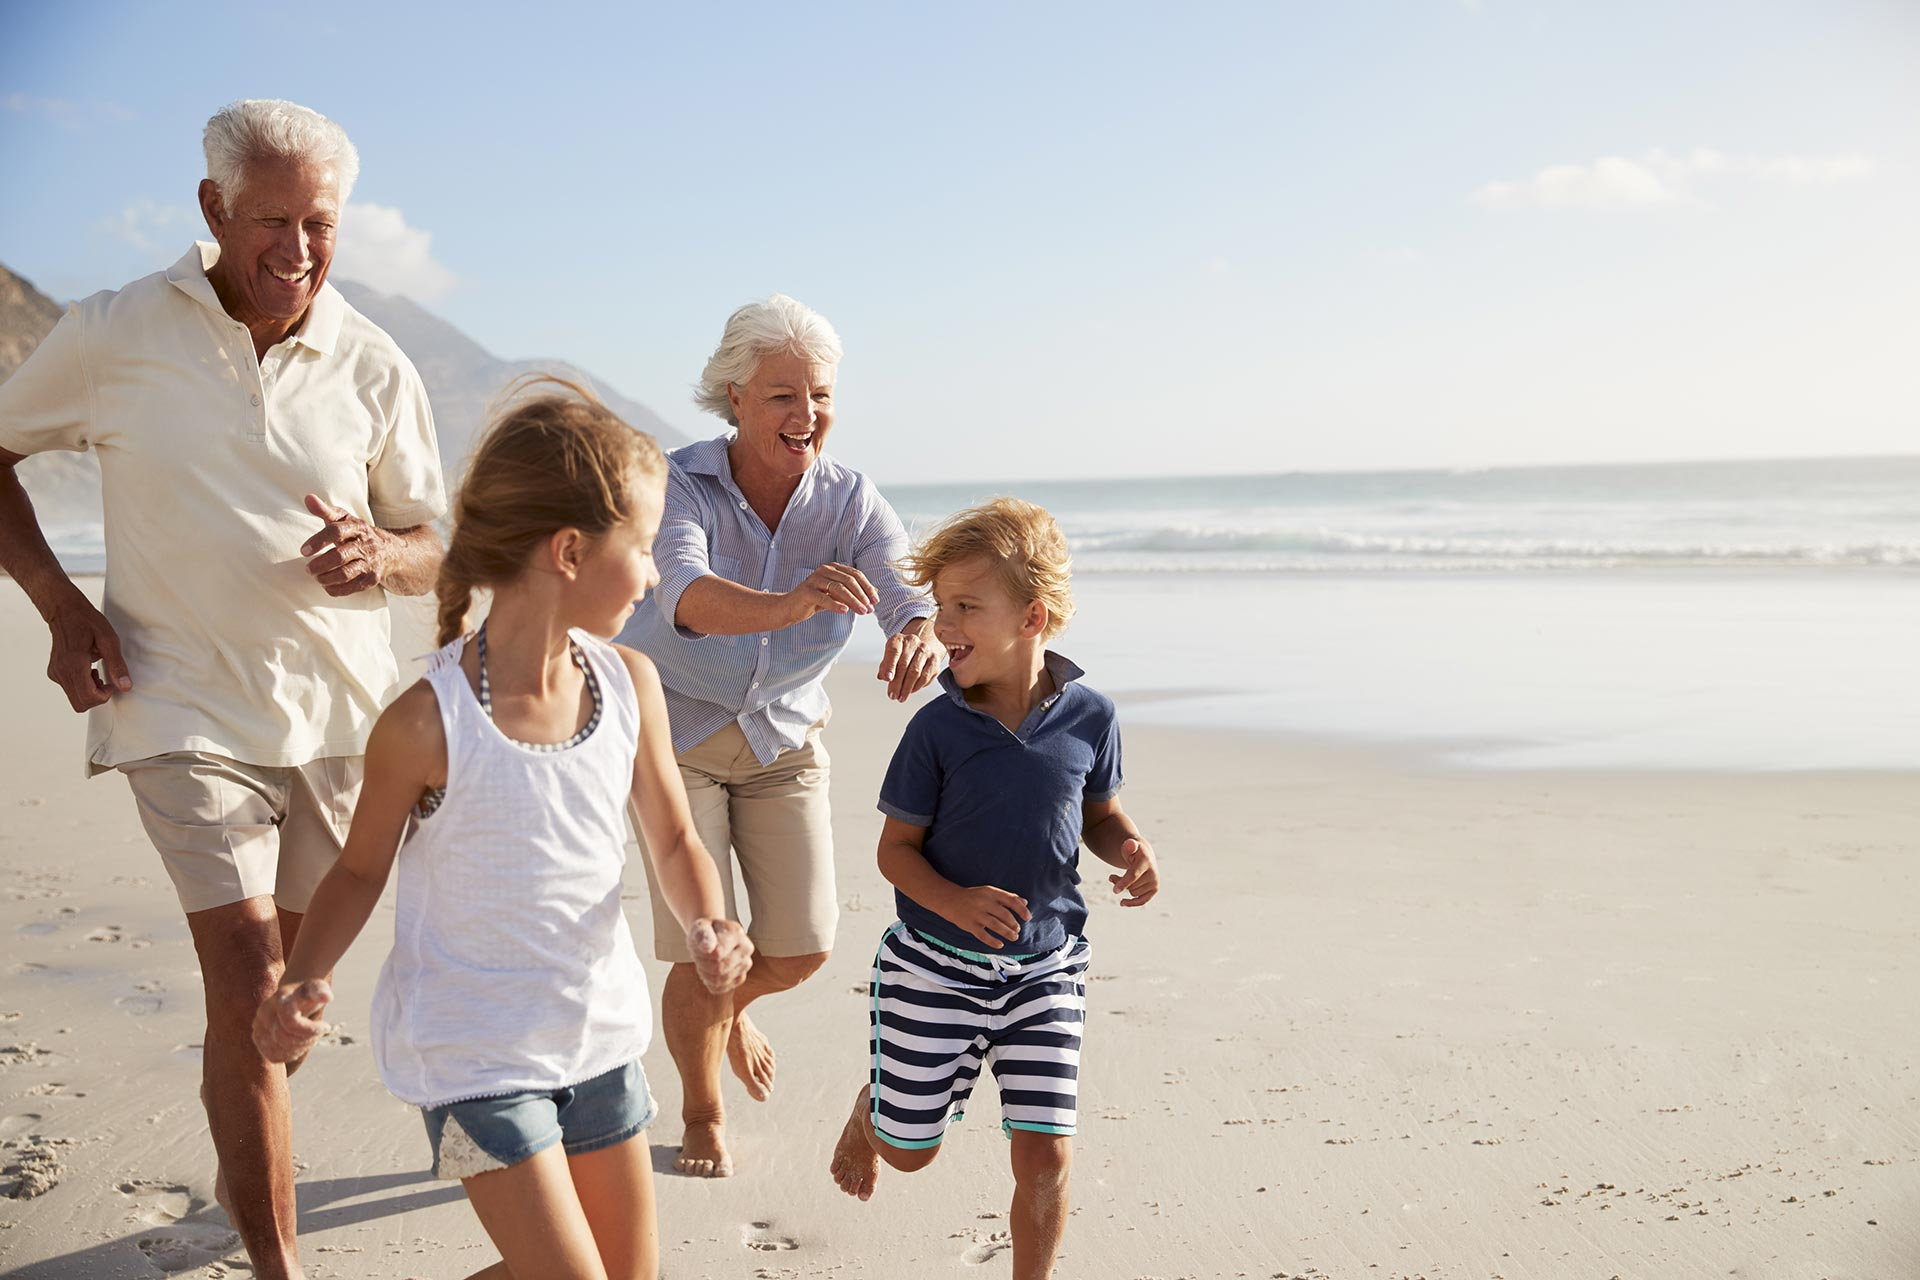 grandparents and kids running on beach